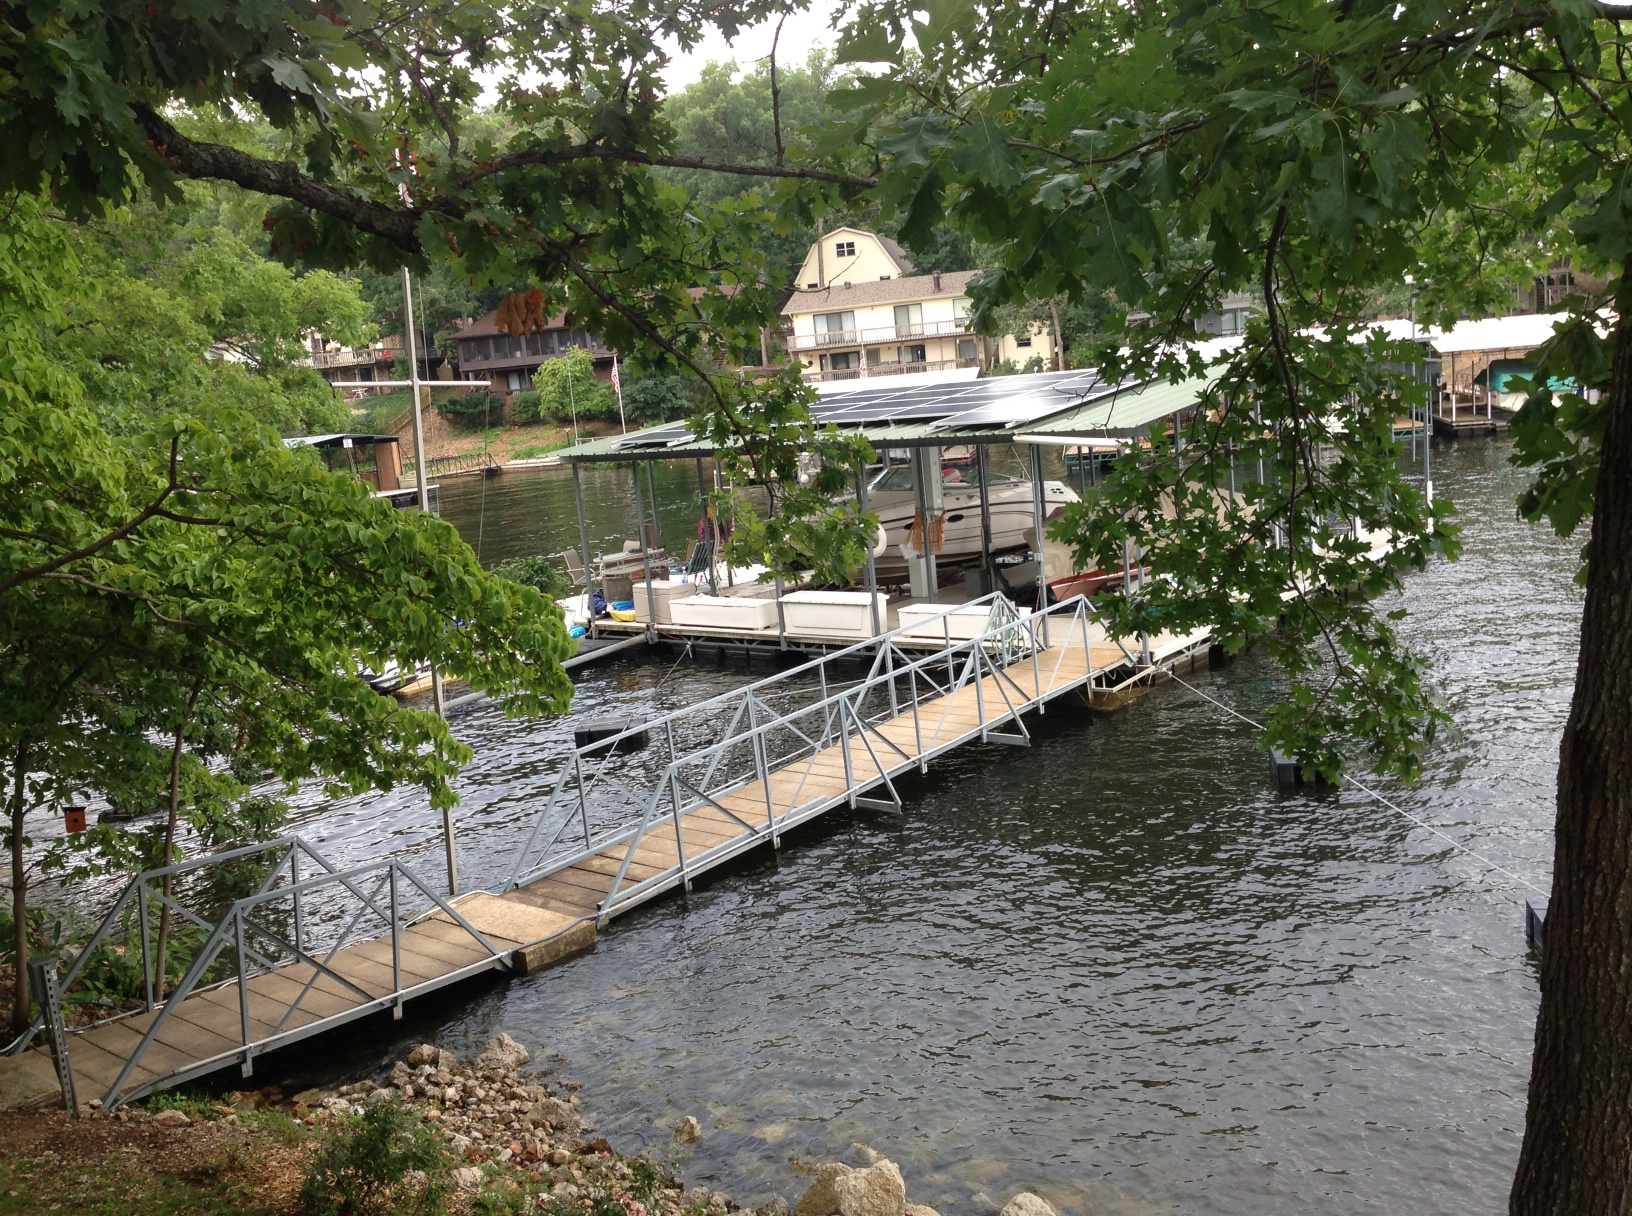 Uncategorized well pump house covers austin locking sump lid - The Boat Dock